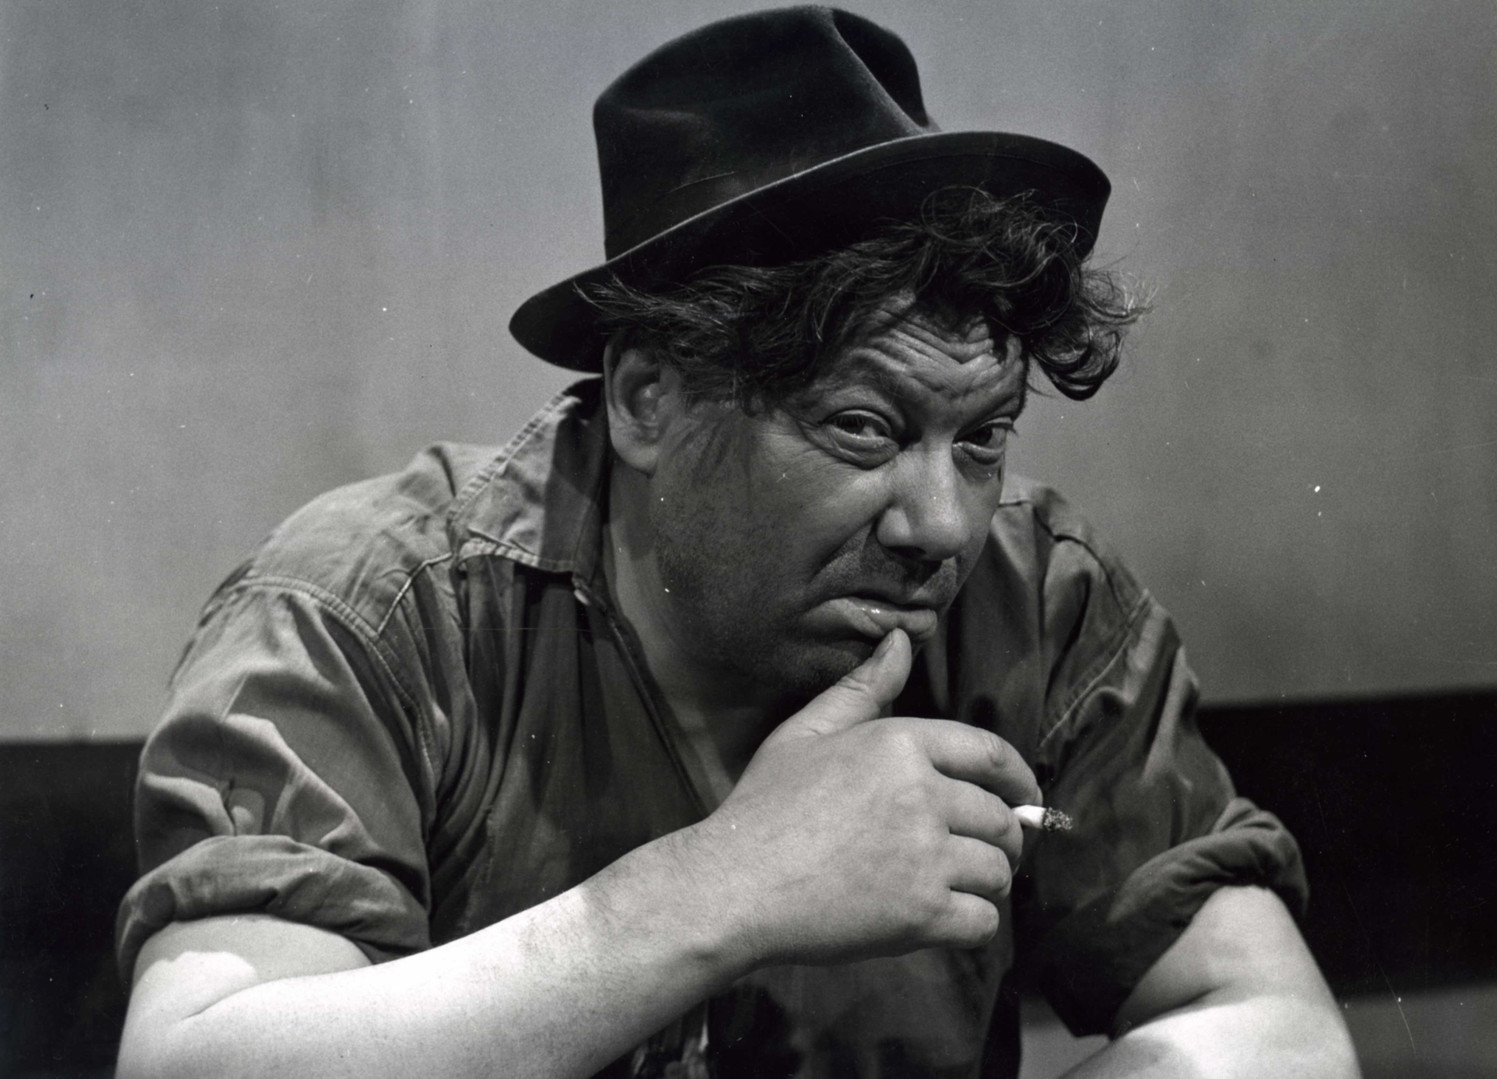 Jaak Germain in Senjorenbloed (1953)